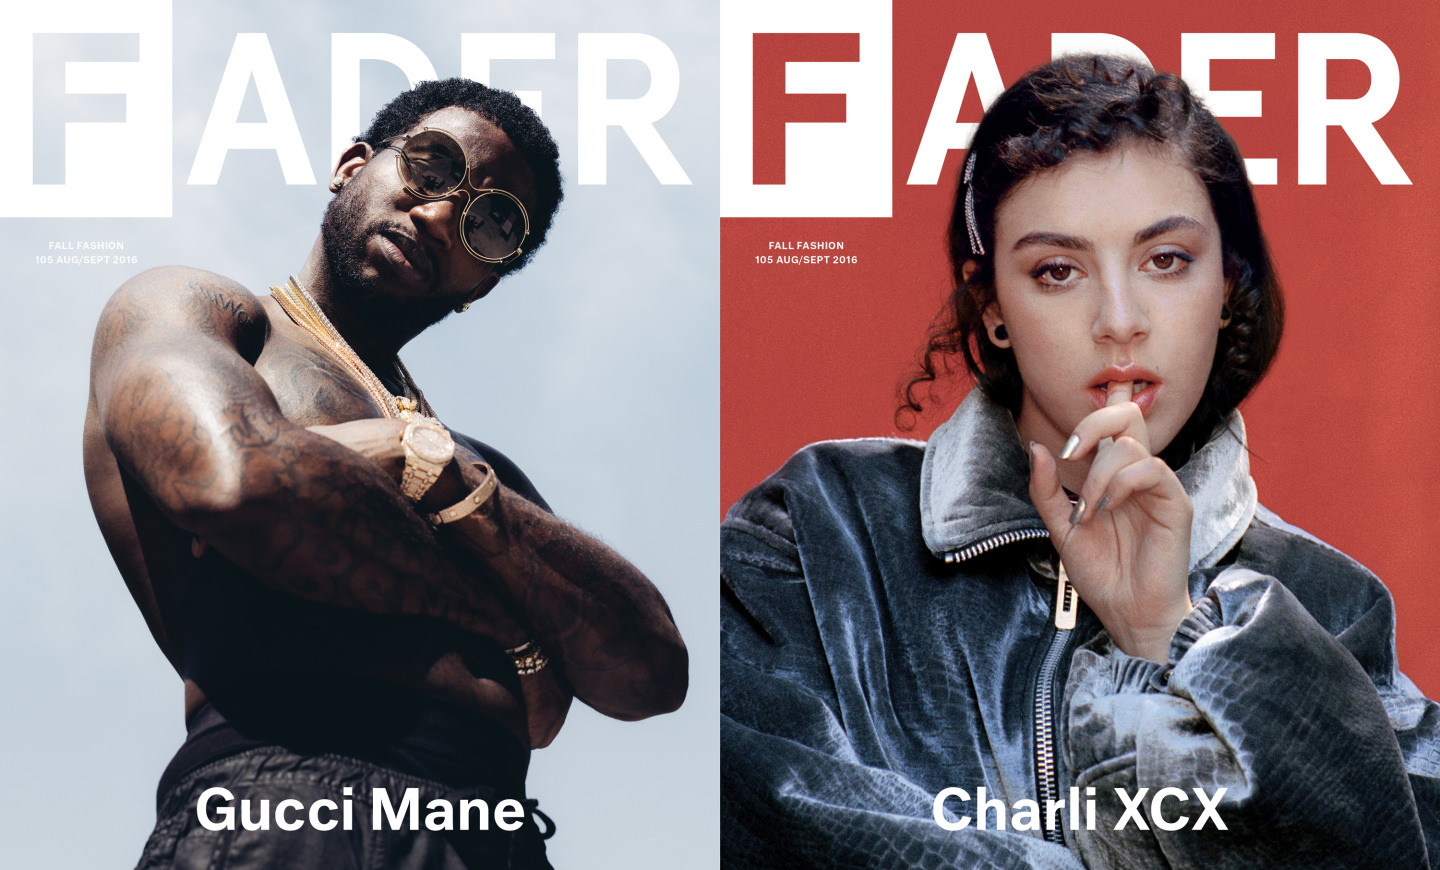 PNL-The Fader Magazine 2016 Partie 1 - YouTube